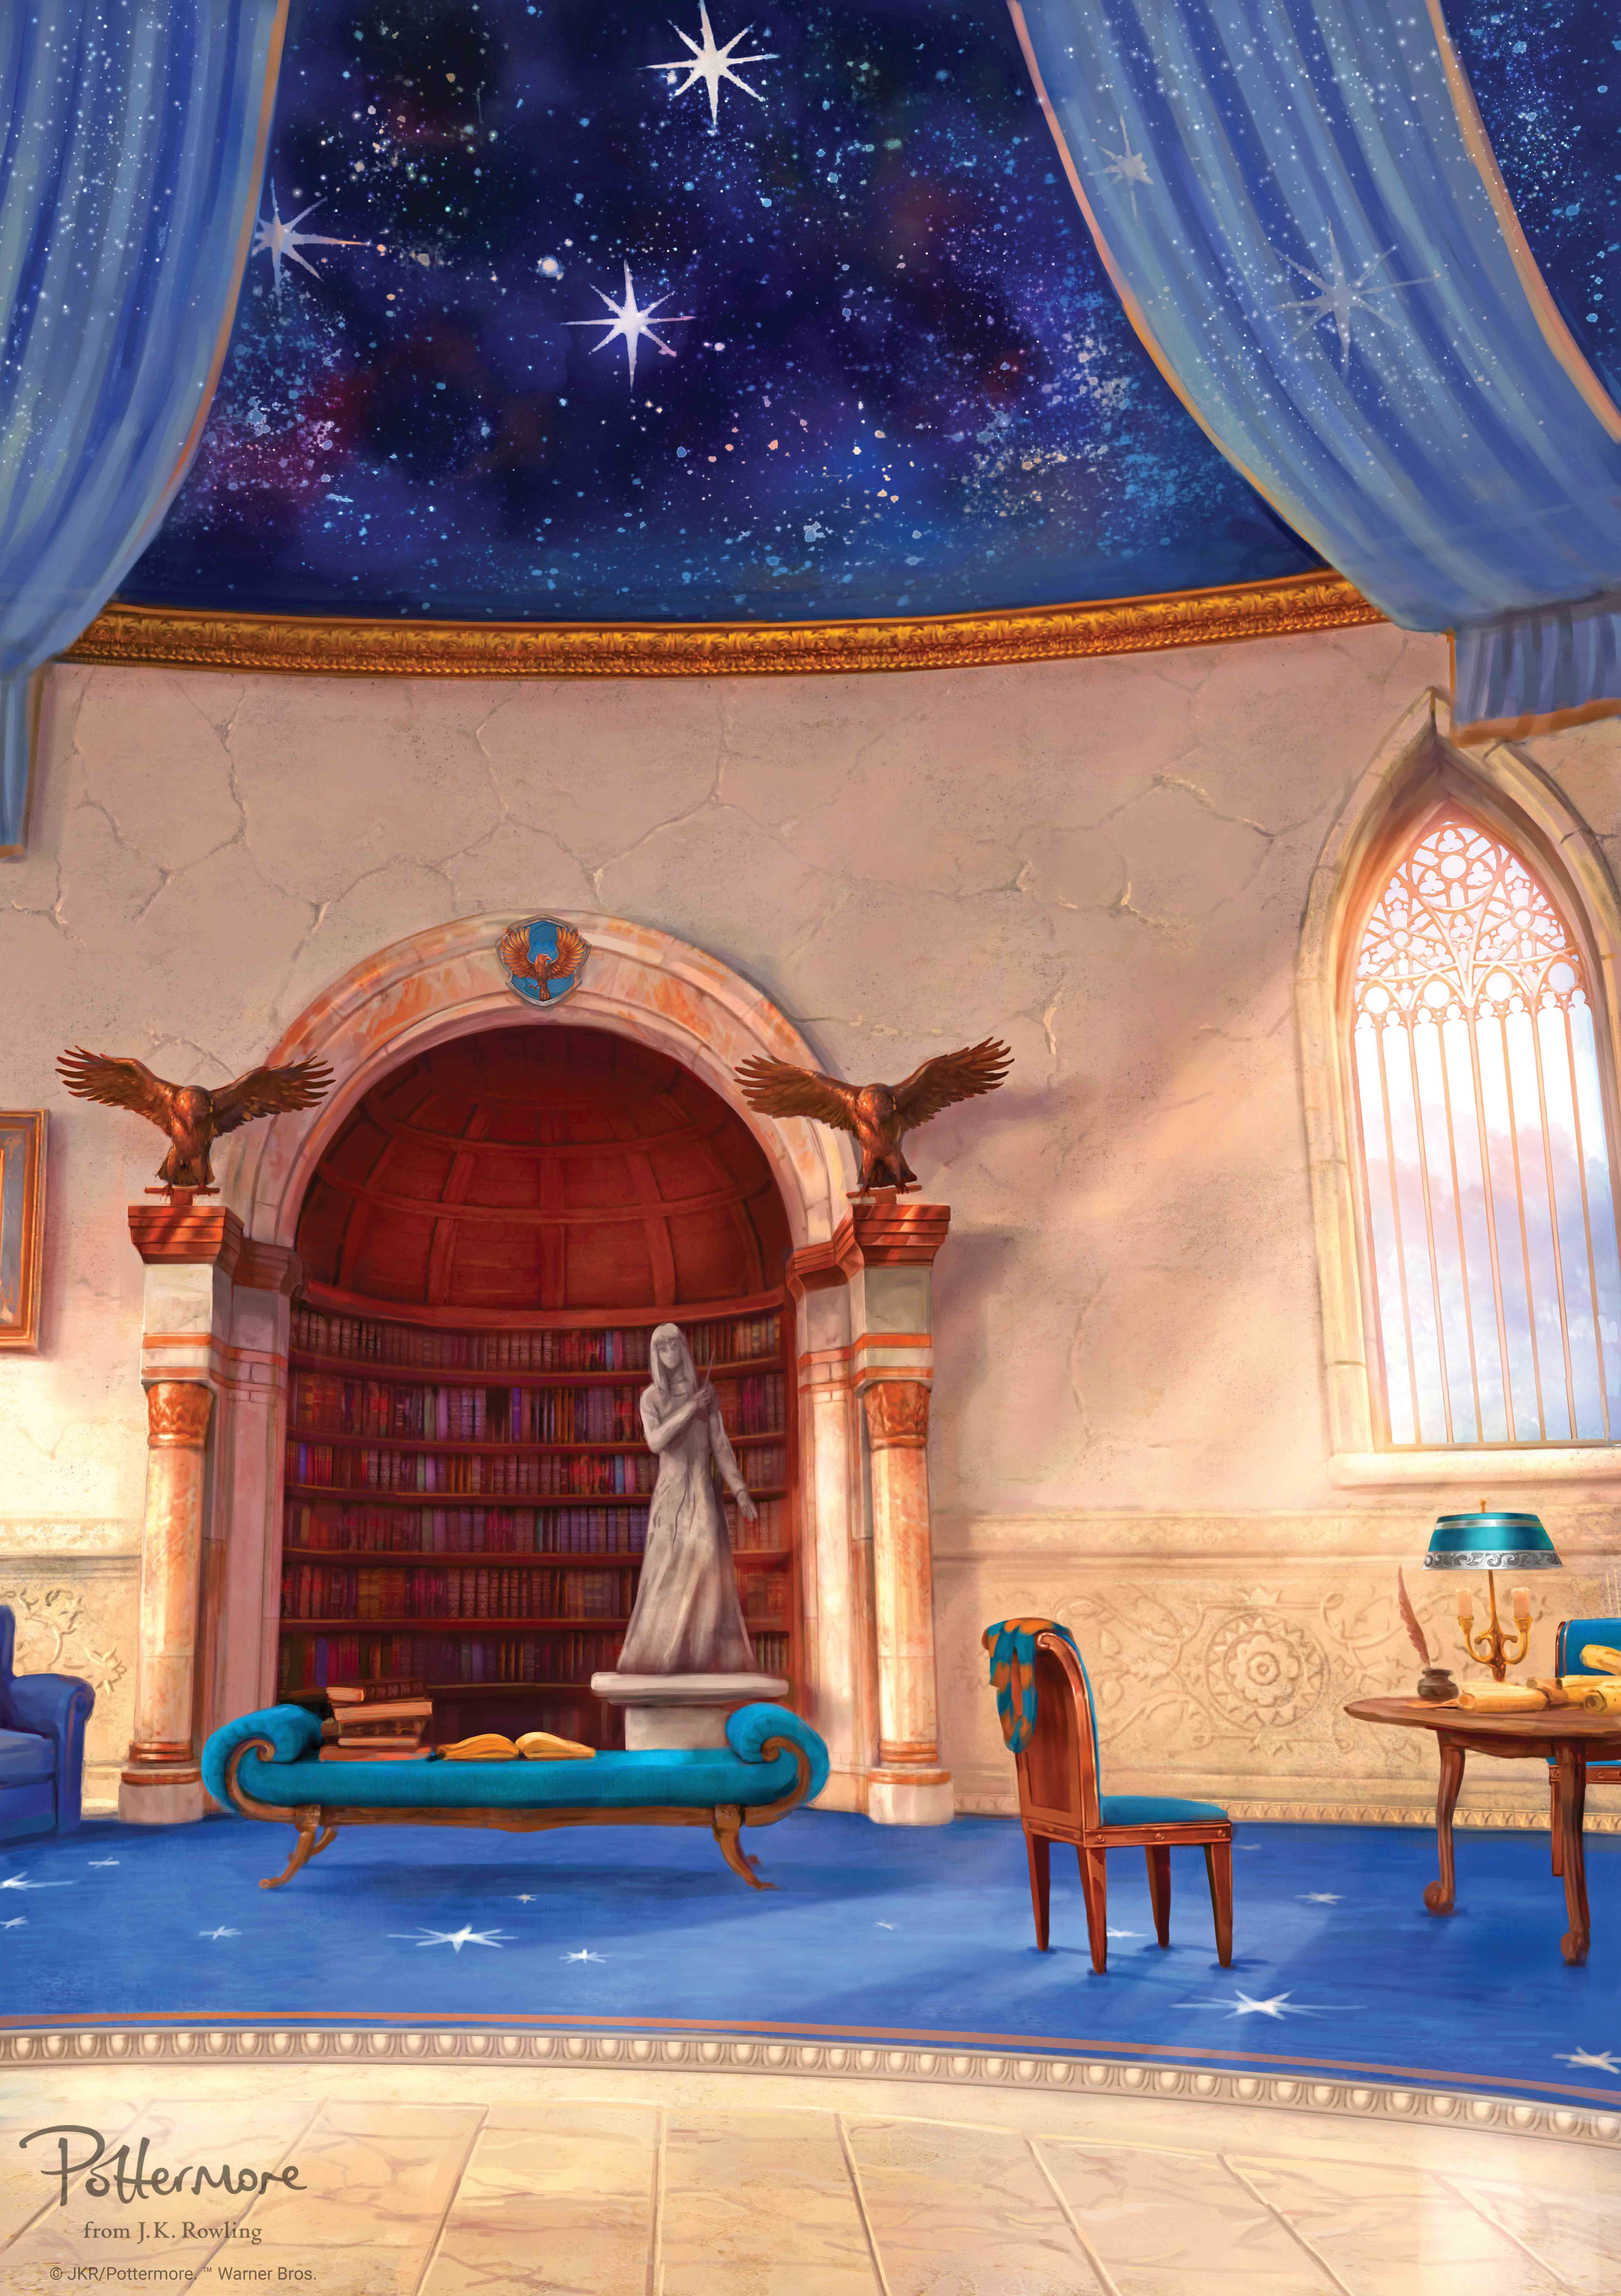 I Got Sorted Into Ravenclaw Home Of The Intelligent Eccentrics No Thats Not Me At All